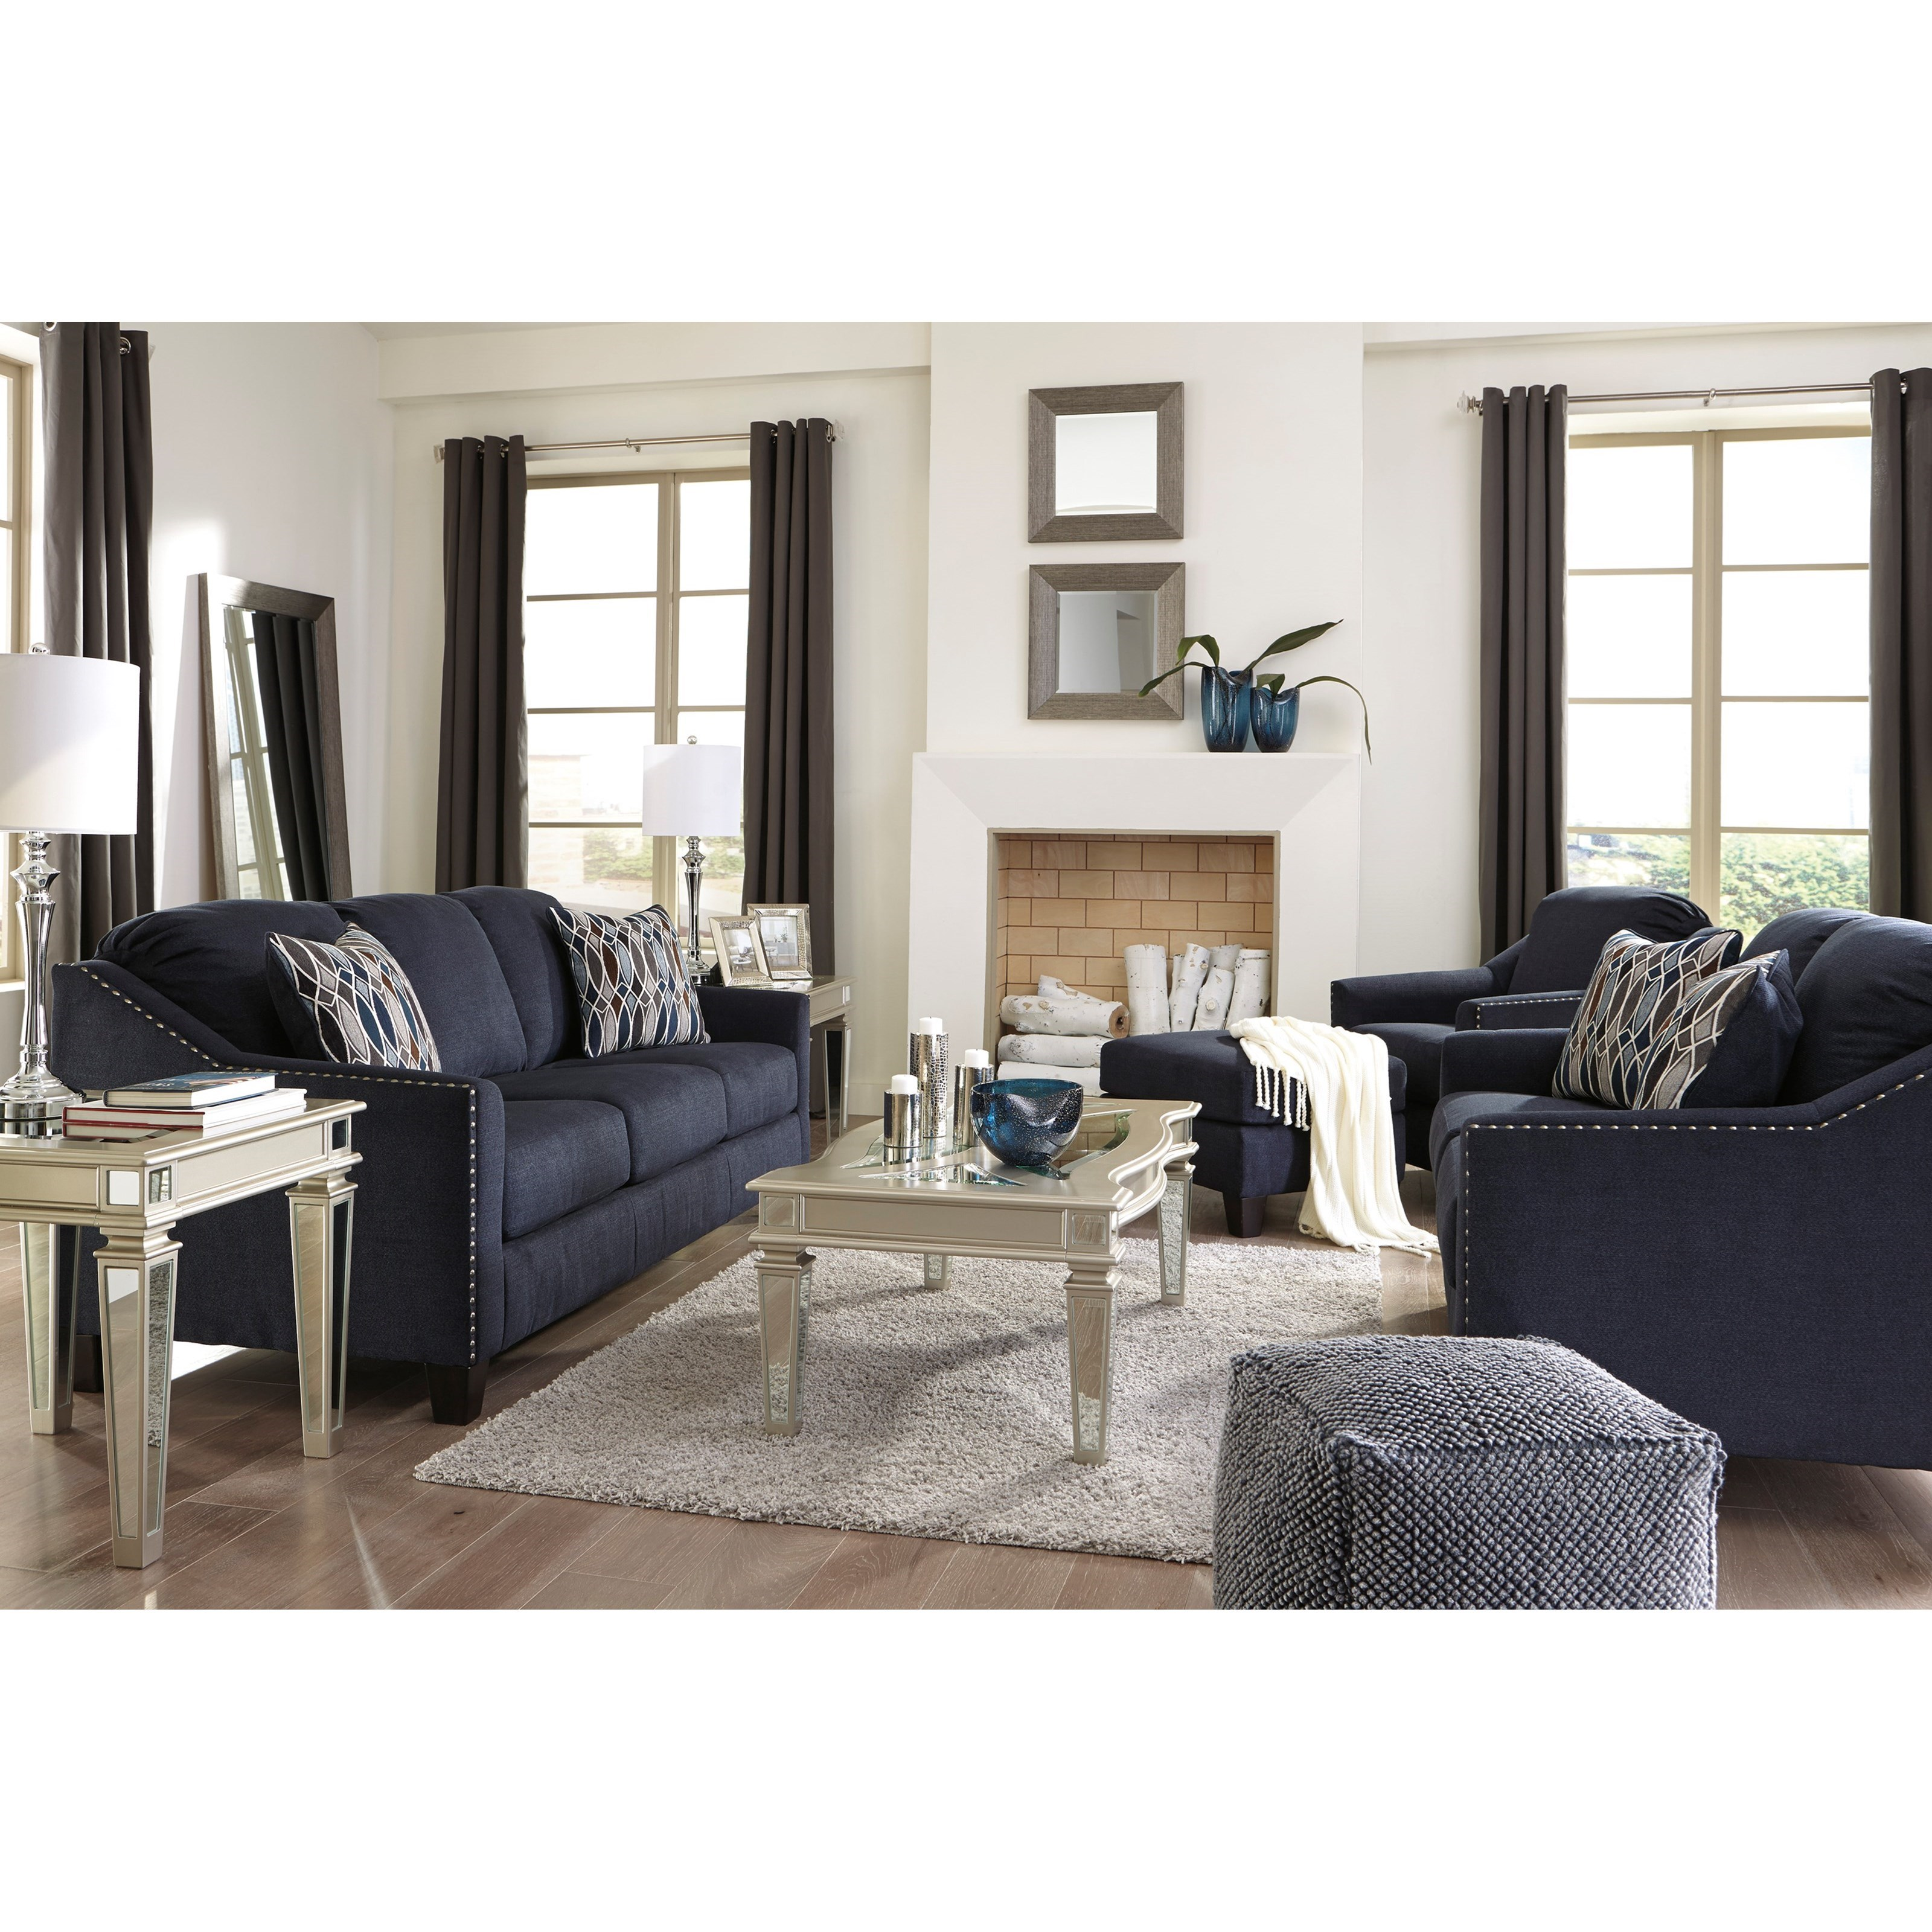 Creeal Heights Living Room Group by Benchcraft at Northeast Factory Direct